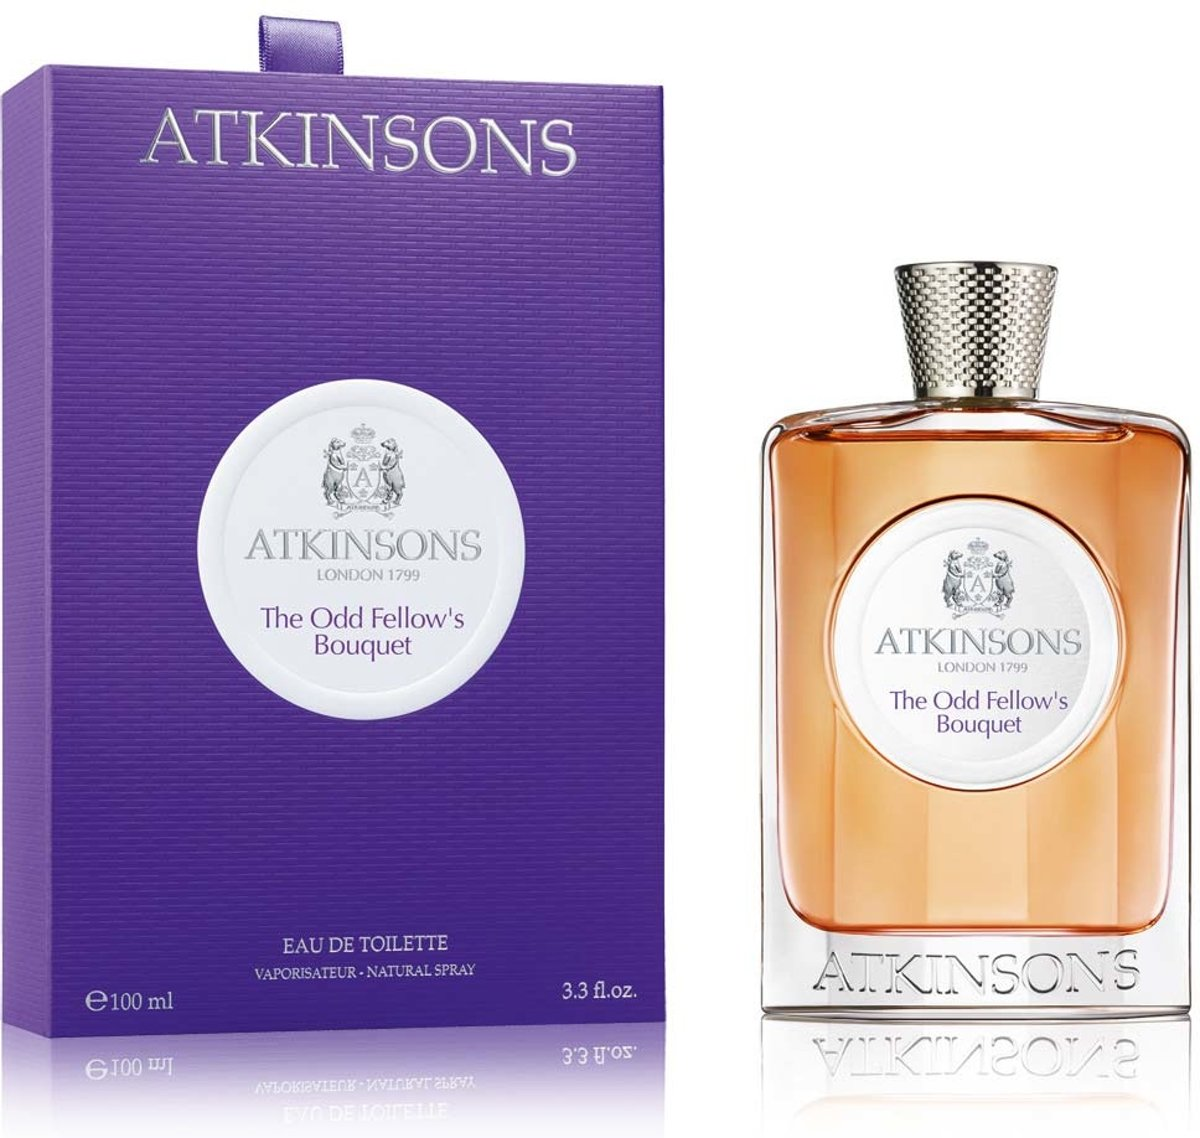 Atkinsons 1799 The Odd Fellows Bouquet 100ml eau de toilette